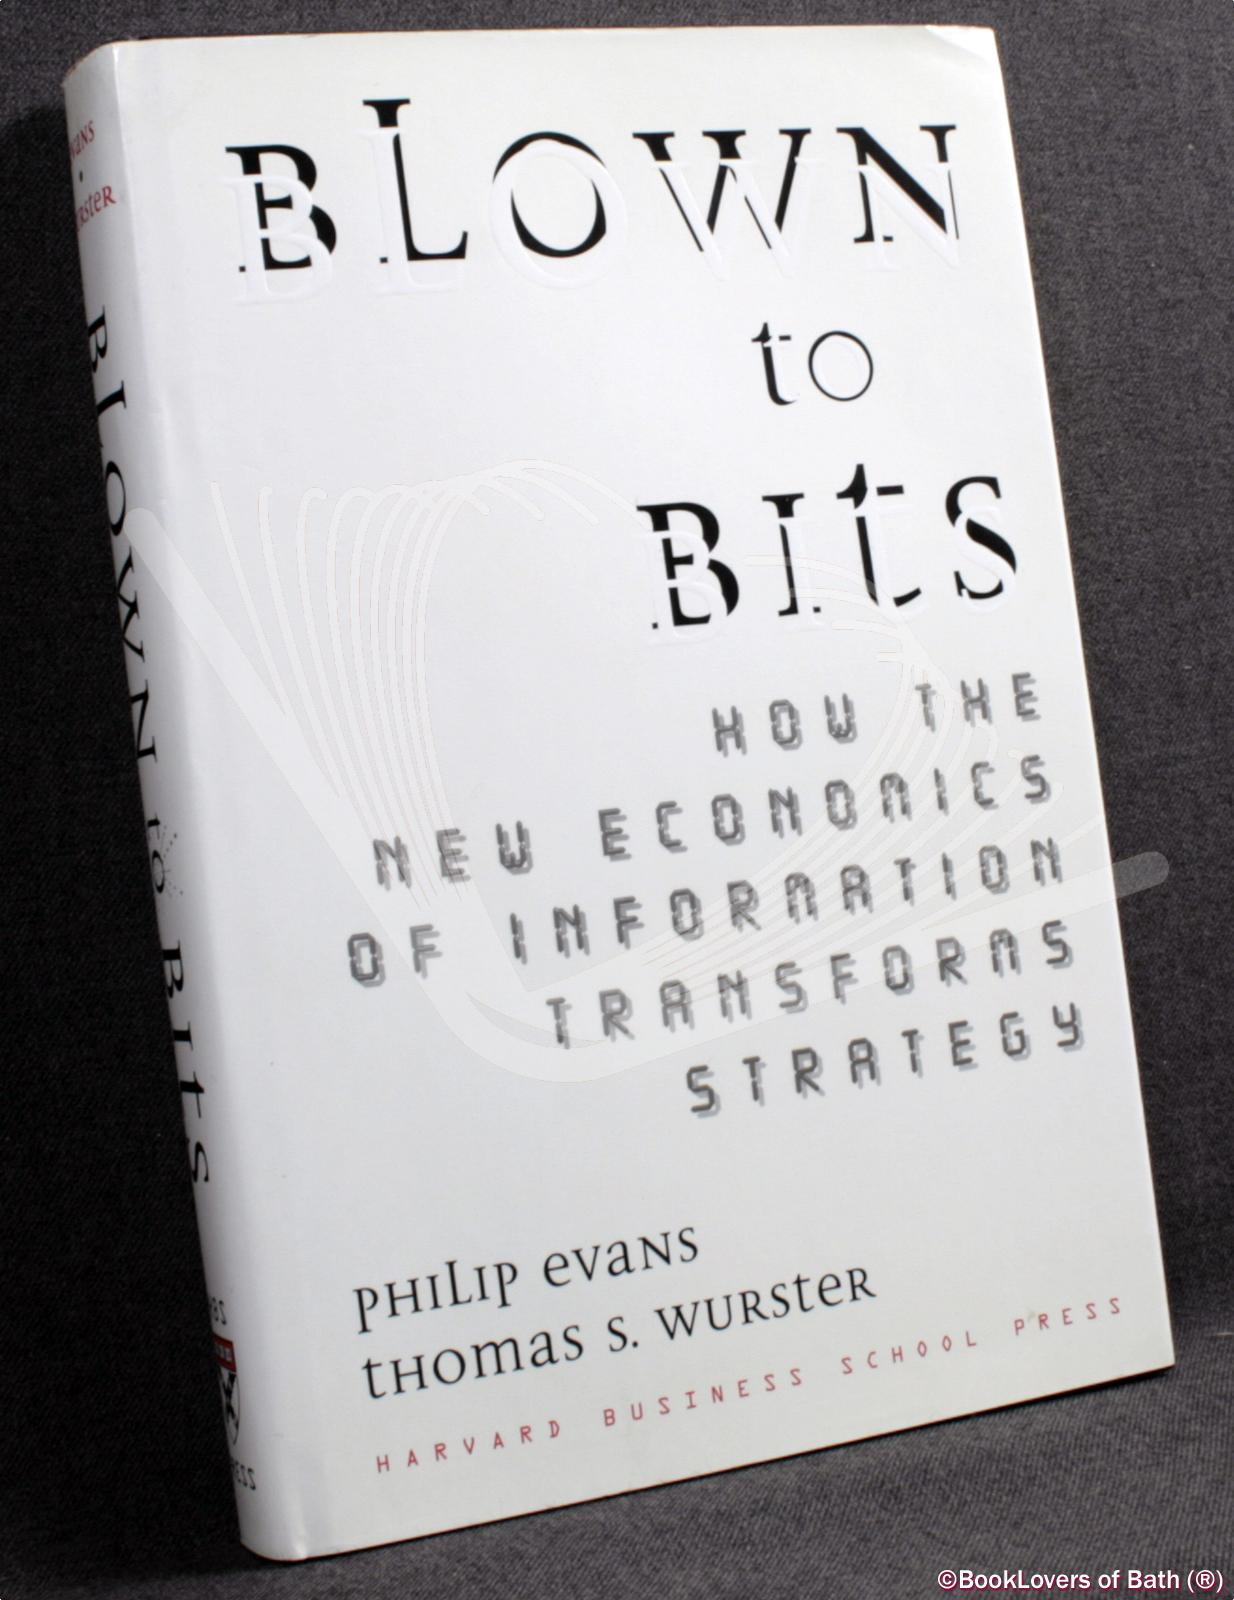 Blown to Bits: How the New Economics of Information Transforms Strategy - Philip Evans & Thomas S. Wurster